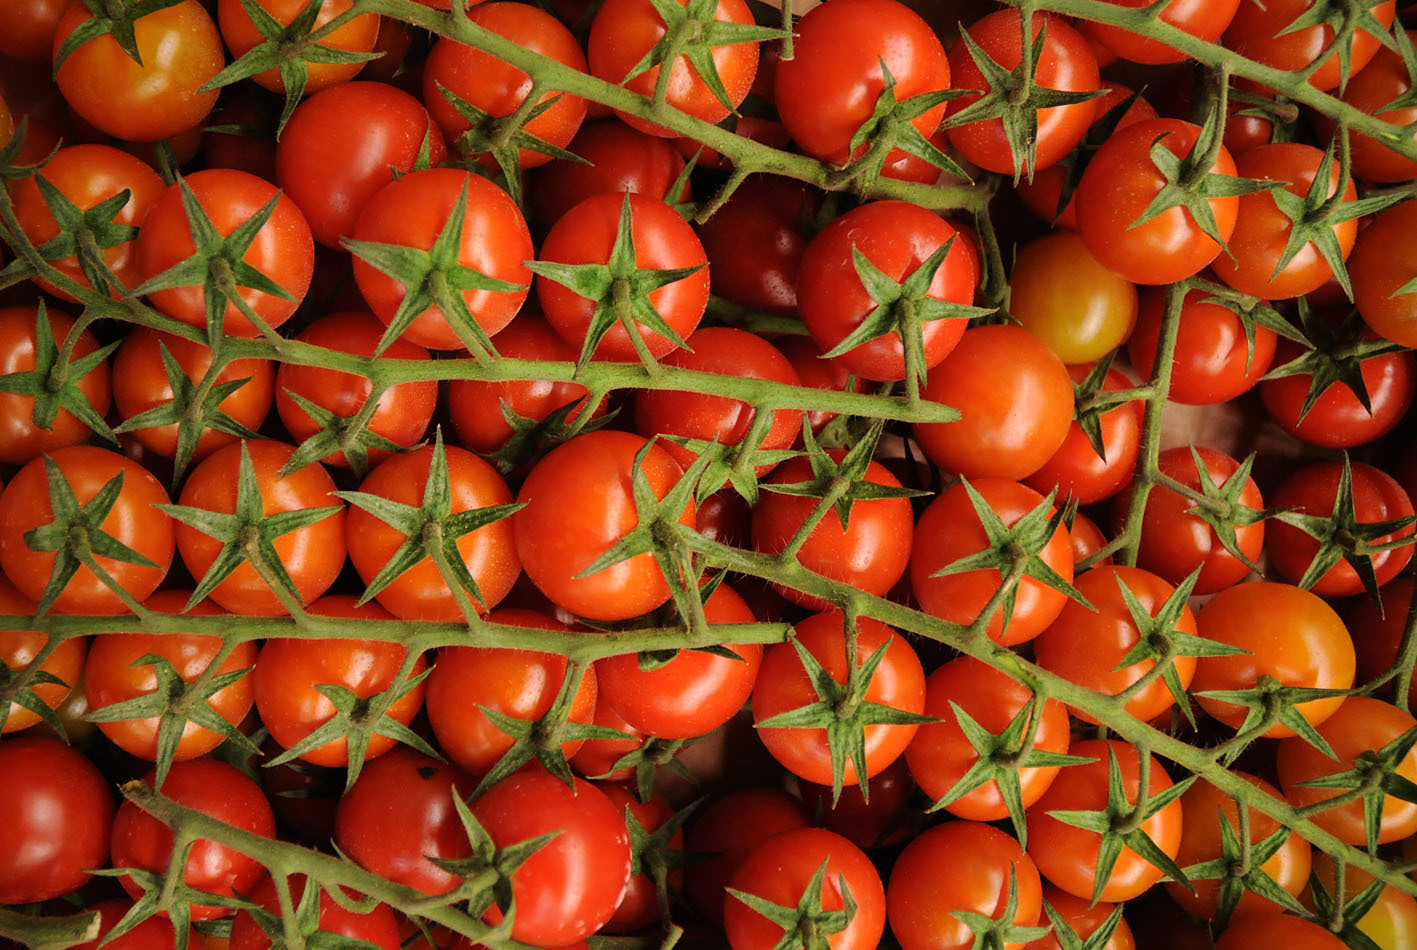 tomatoes_170922_144316.jpg?mtime=20170922144315#asset:11553